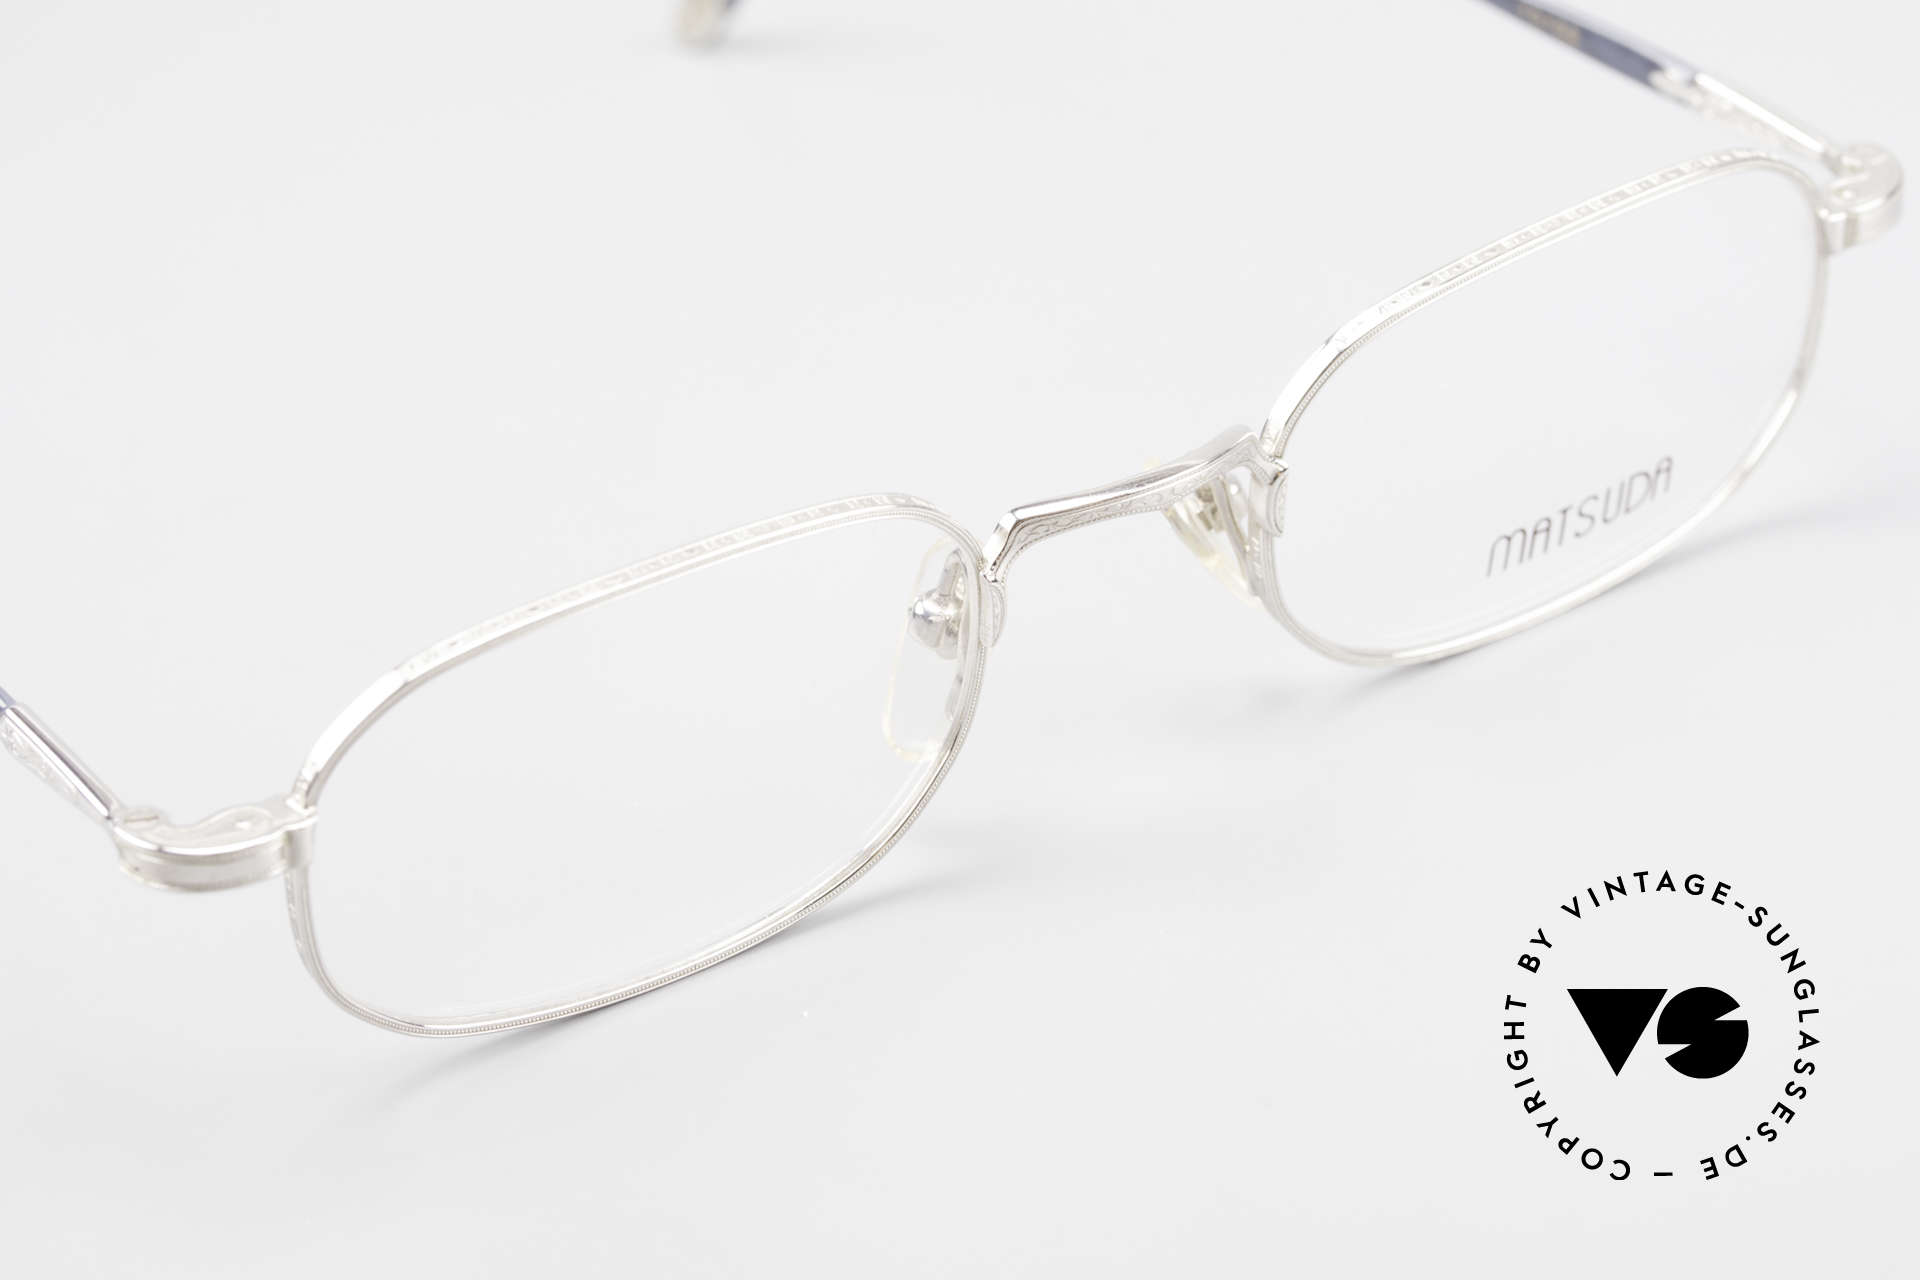 Matsuda 10108 90's Men's Eyeglasses High End, unworn rarity (like all our rare vintage Matsuda frames), Made for Men